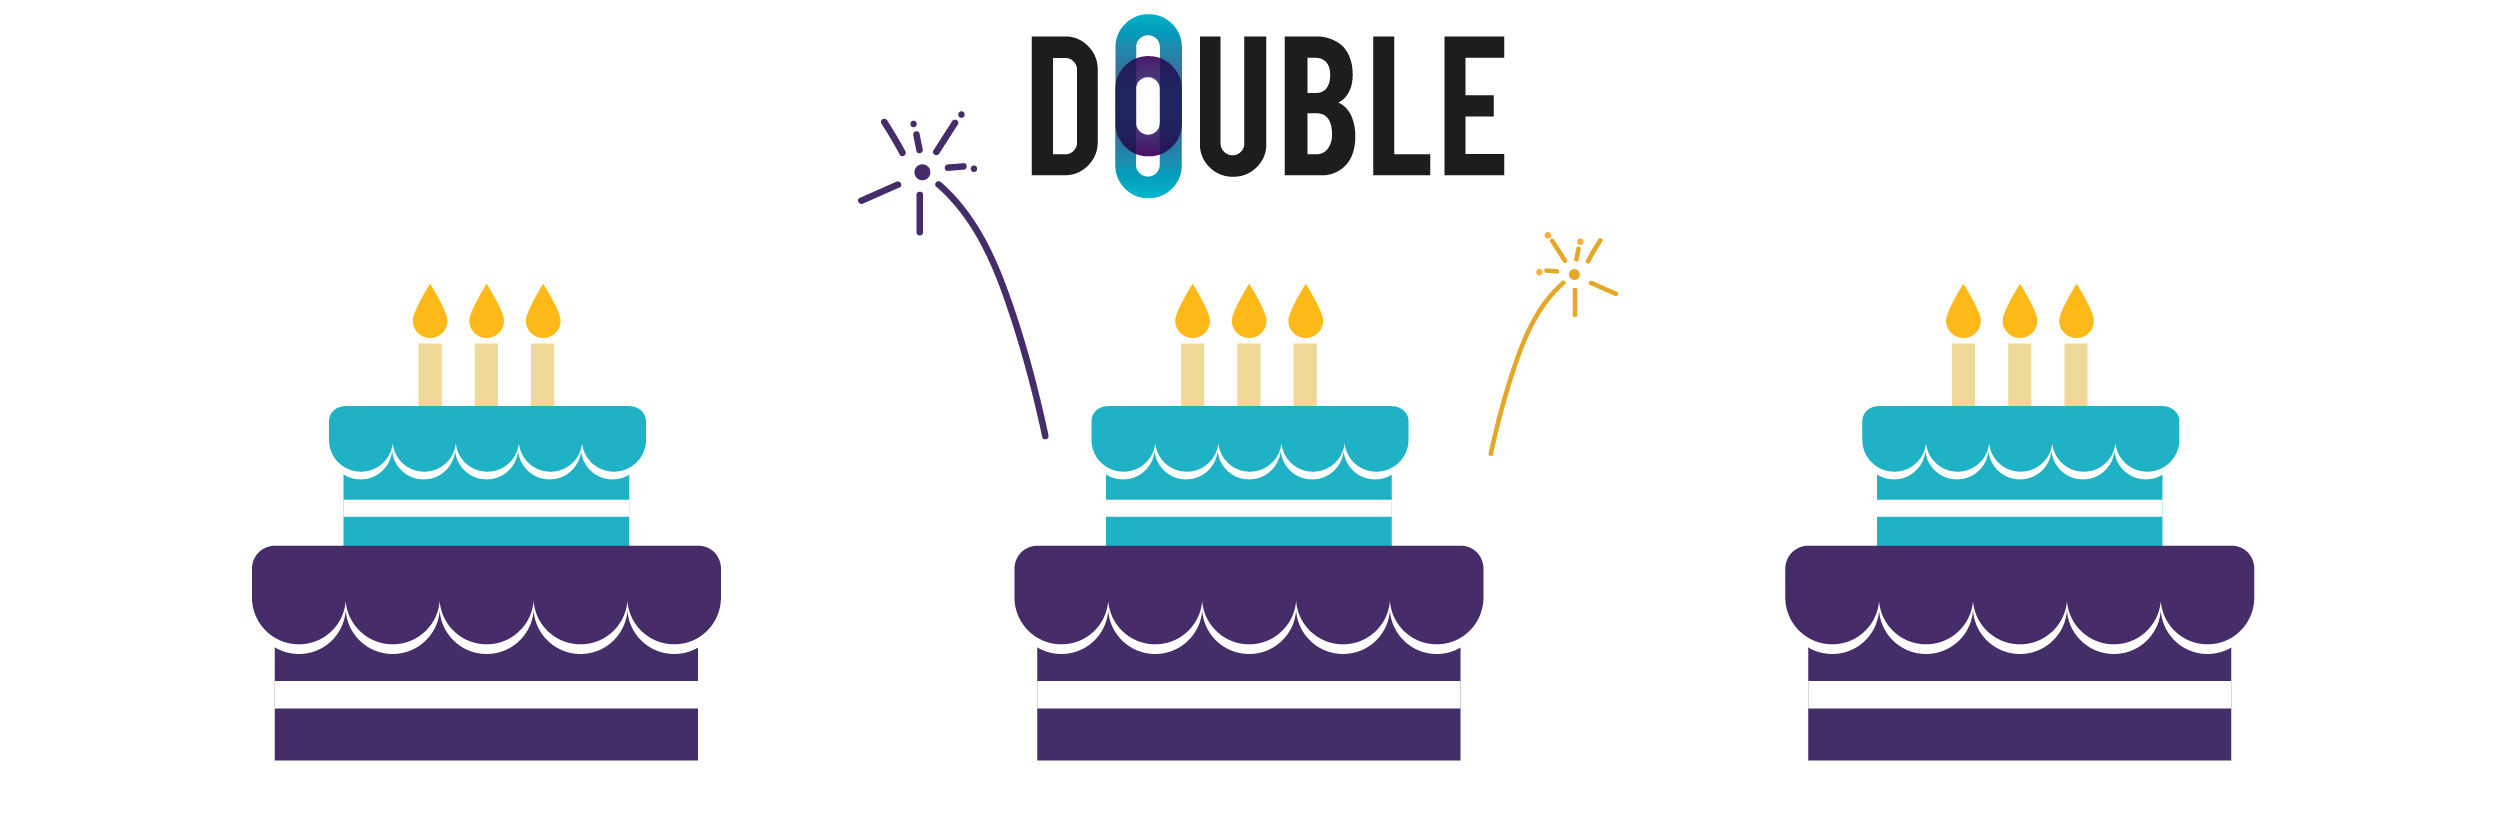 Already are 3 Years of Double Design & Development (DDD)!